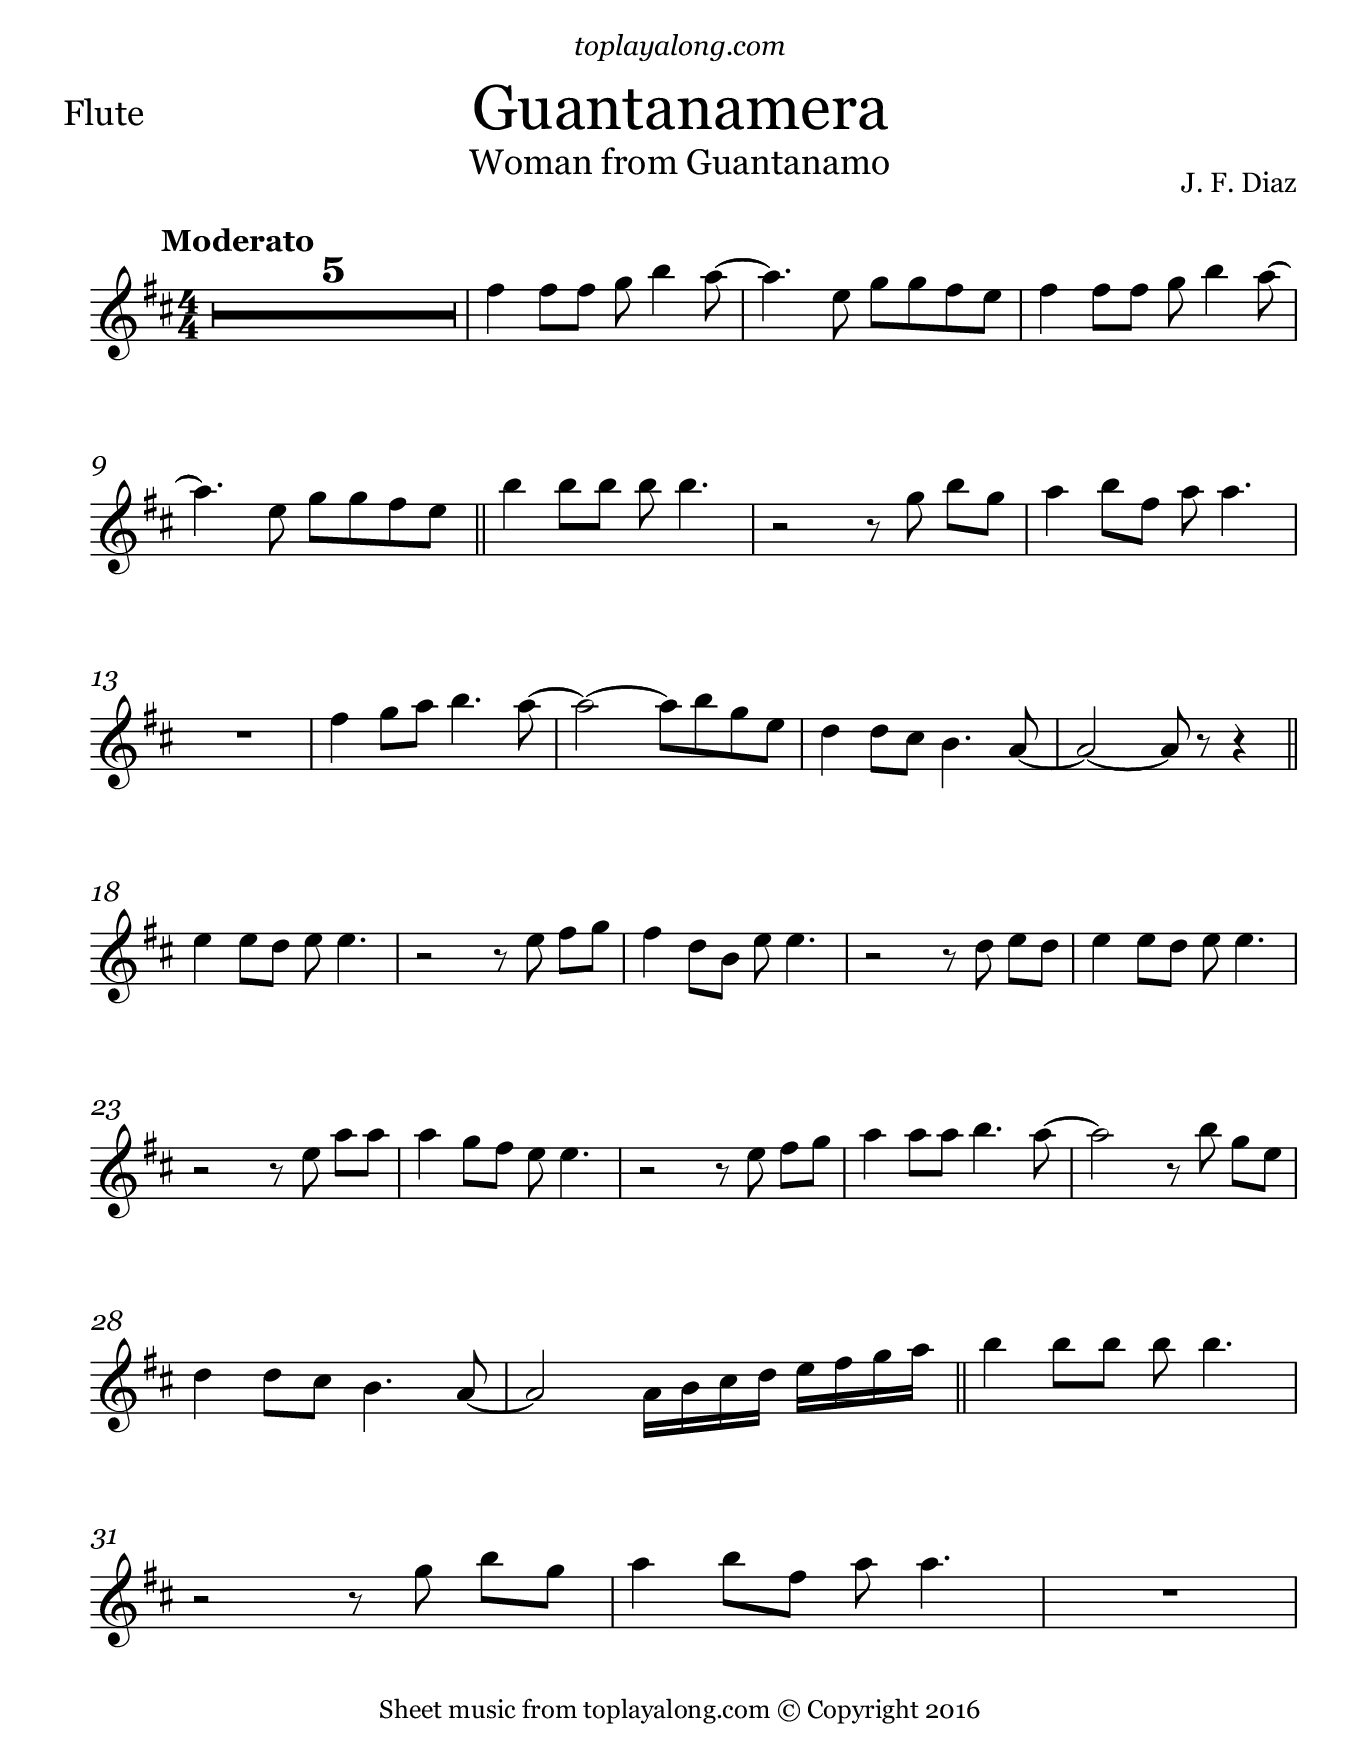 Guantanamera by Joseíto Fernández. Sheet music for Flute, page 1.